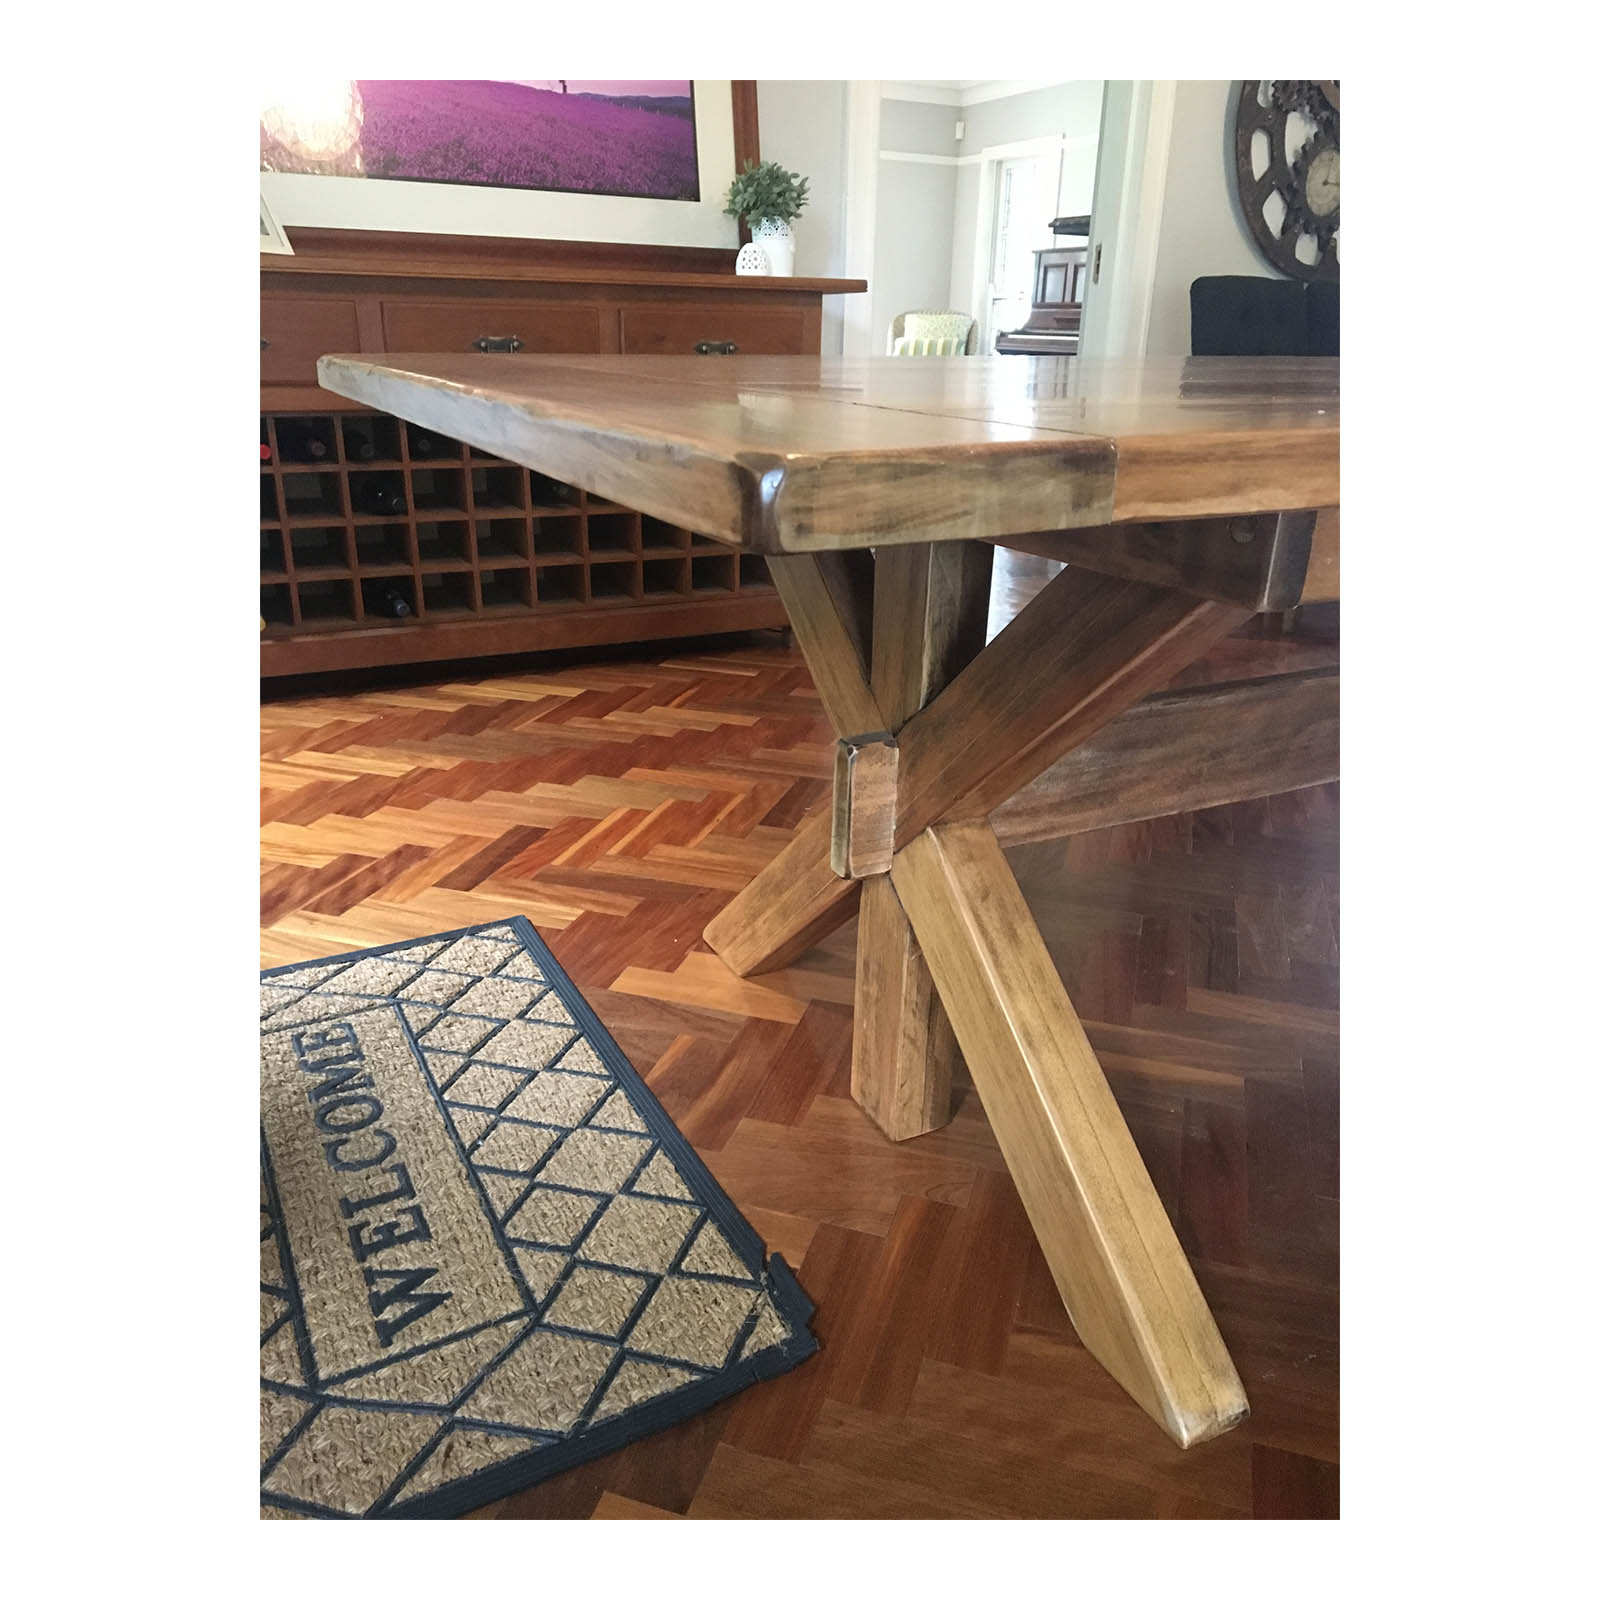 Dining Table Seats 12: Kauri Pine Dining Table, Seats 12